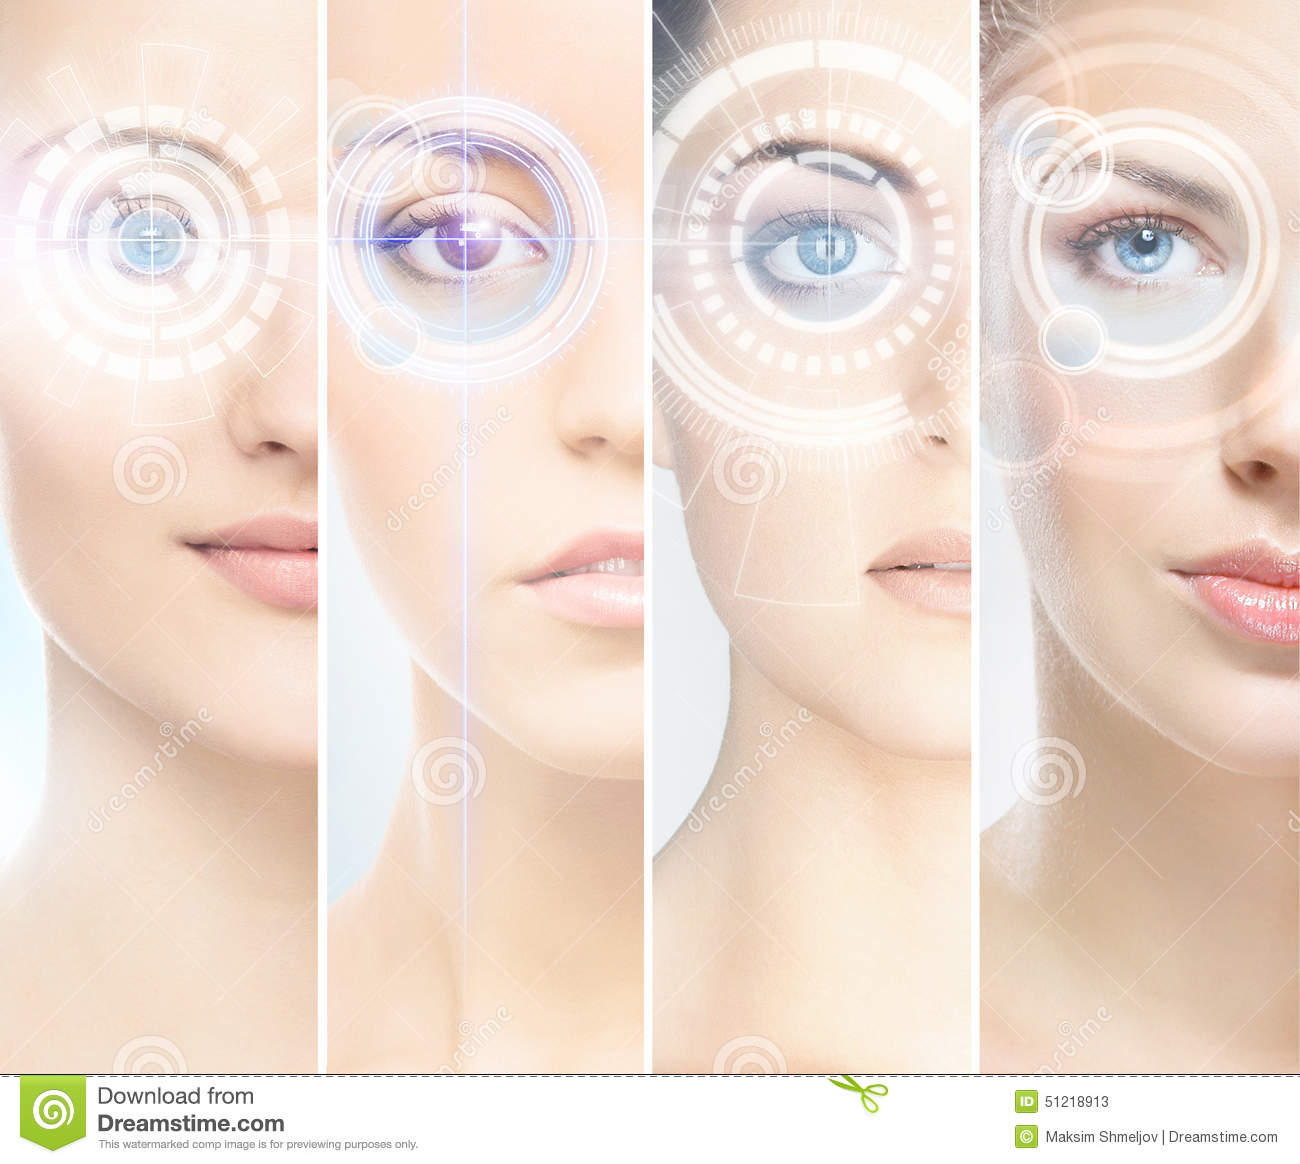 Women With Digital Laser Hologras On Their Eyes Stock